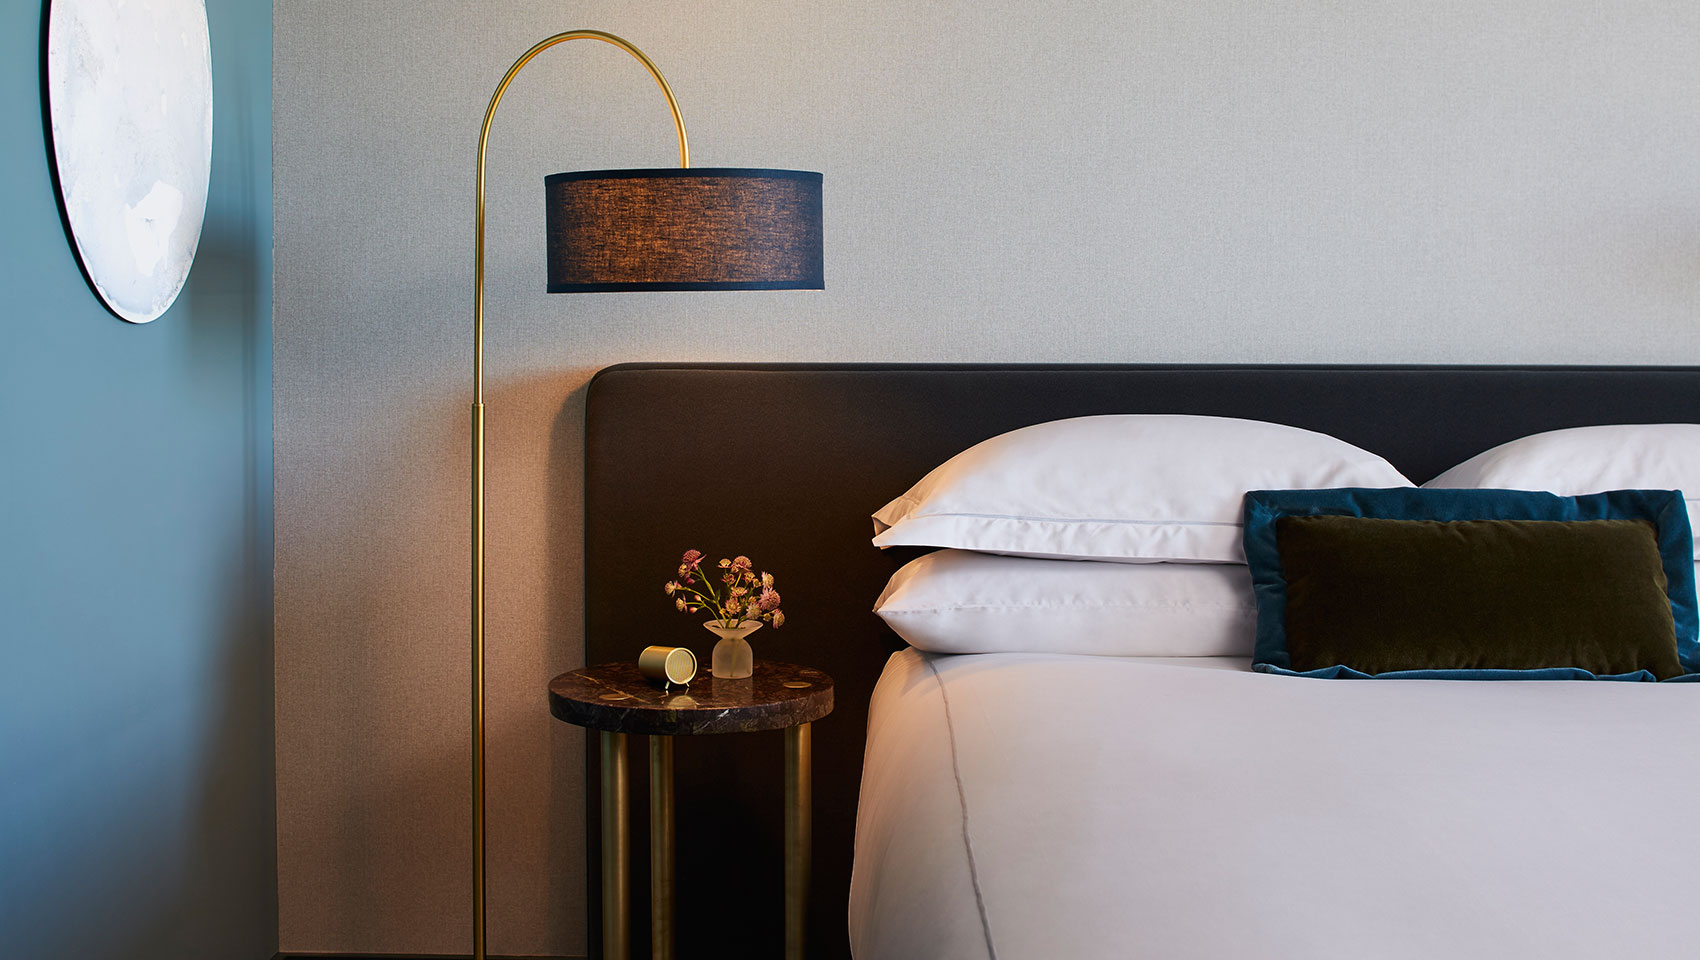 Kimpton Saint George guest bed and side table